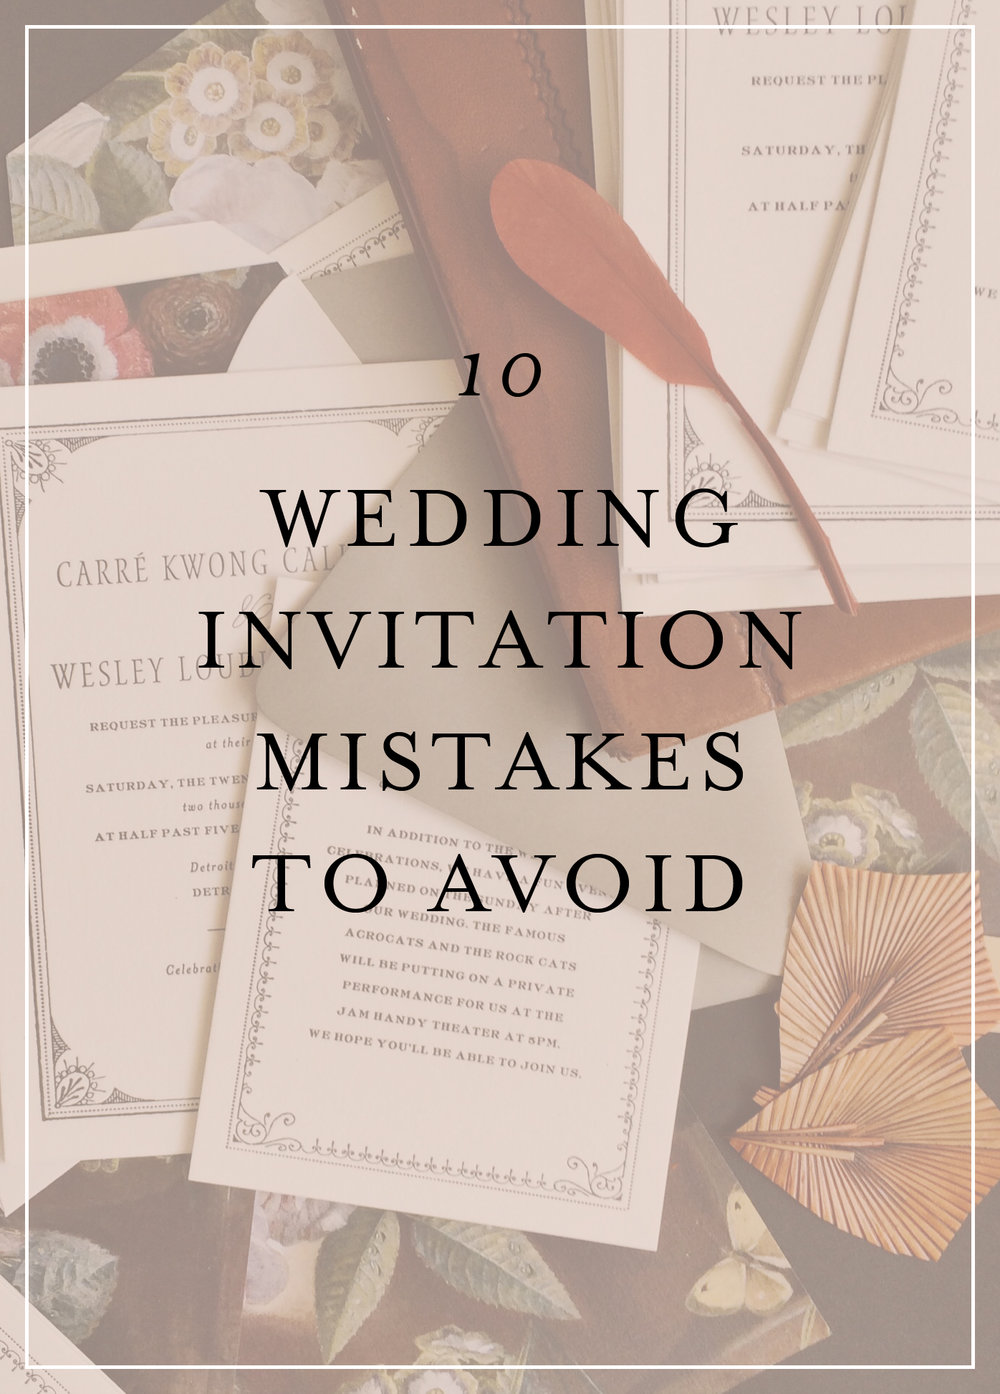 Do you write guest names on wedding invitations